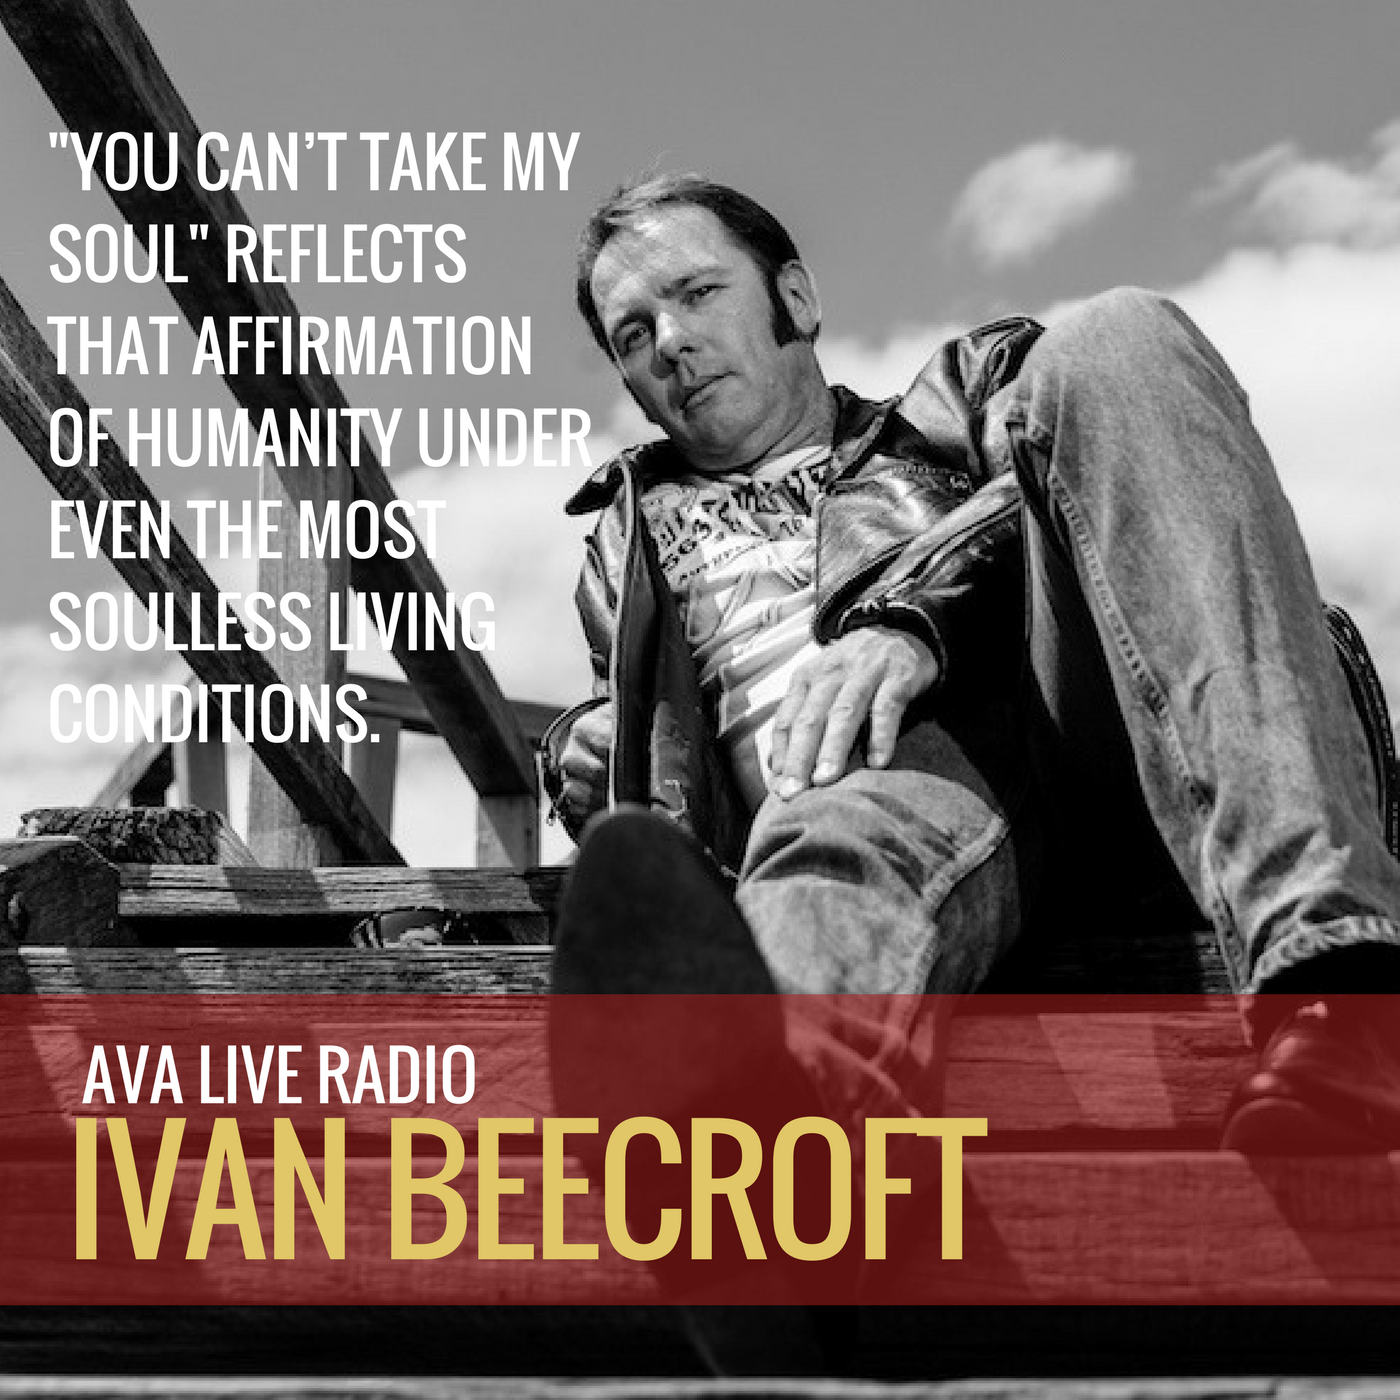 Ivan Beecroft His New Song You Can't Take My Soul